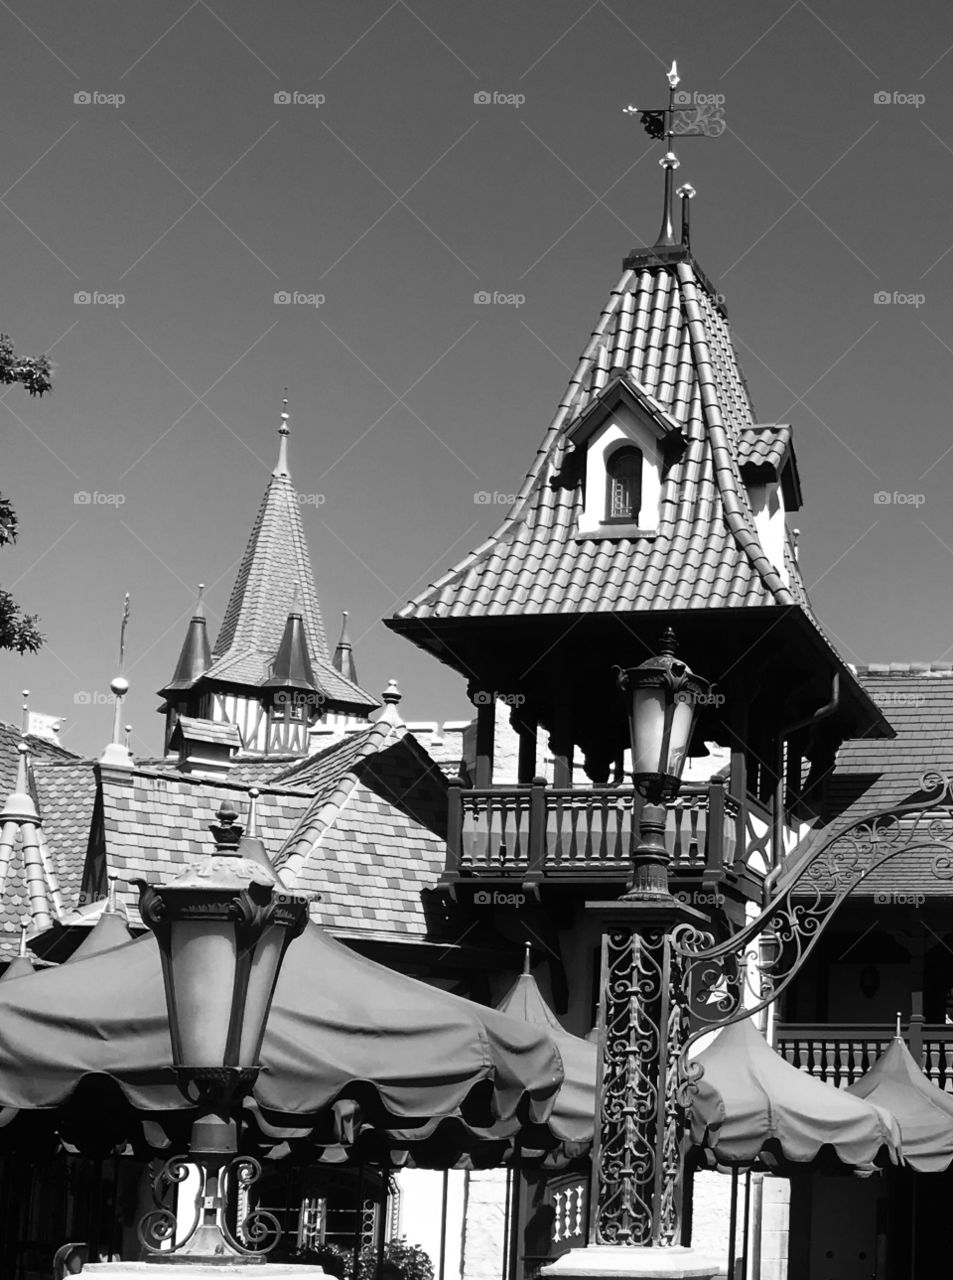 Rooftop images of European architecture. Pinocchio house in Walt Disney World. Black and white architecture.